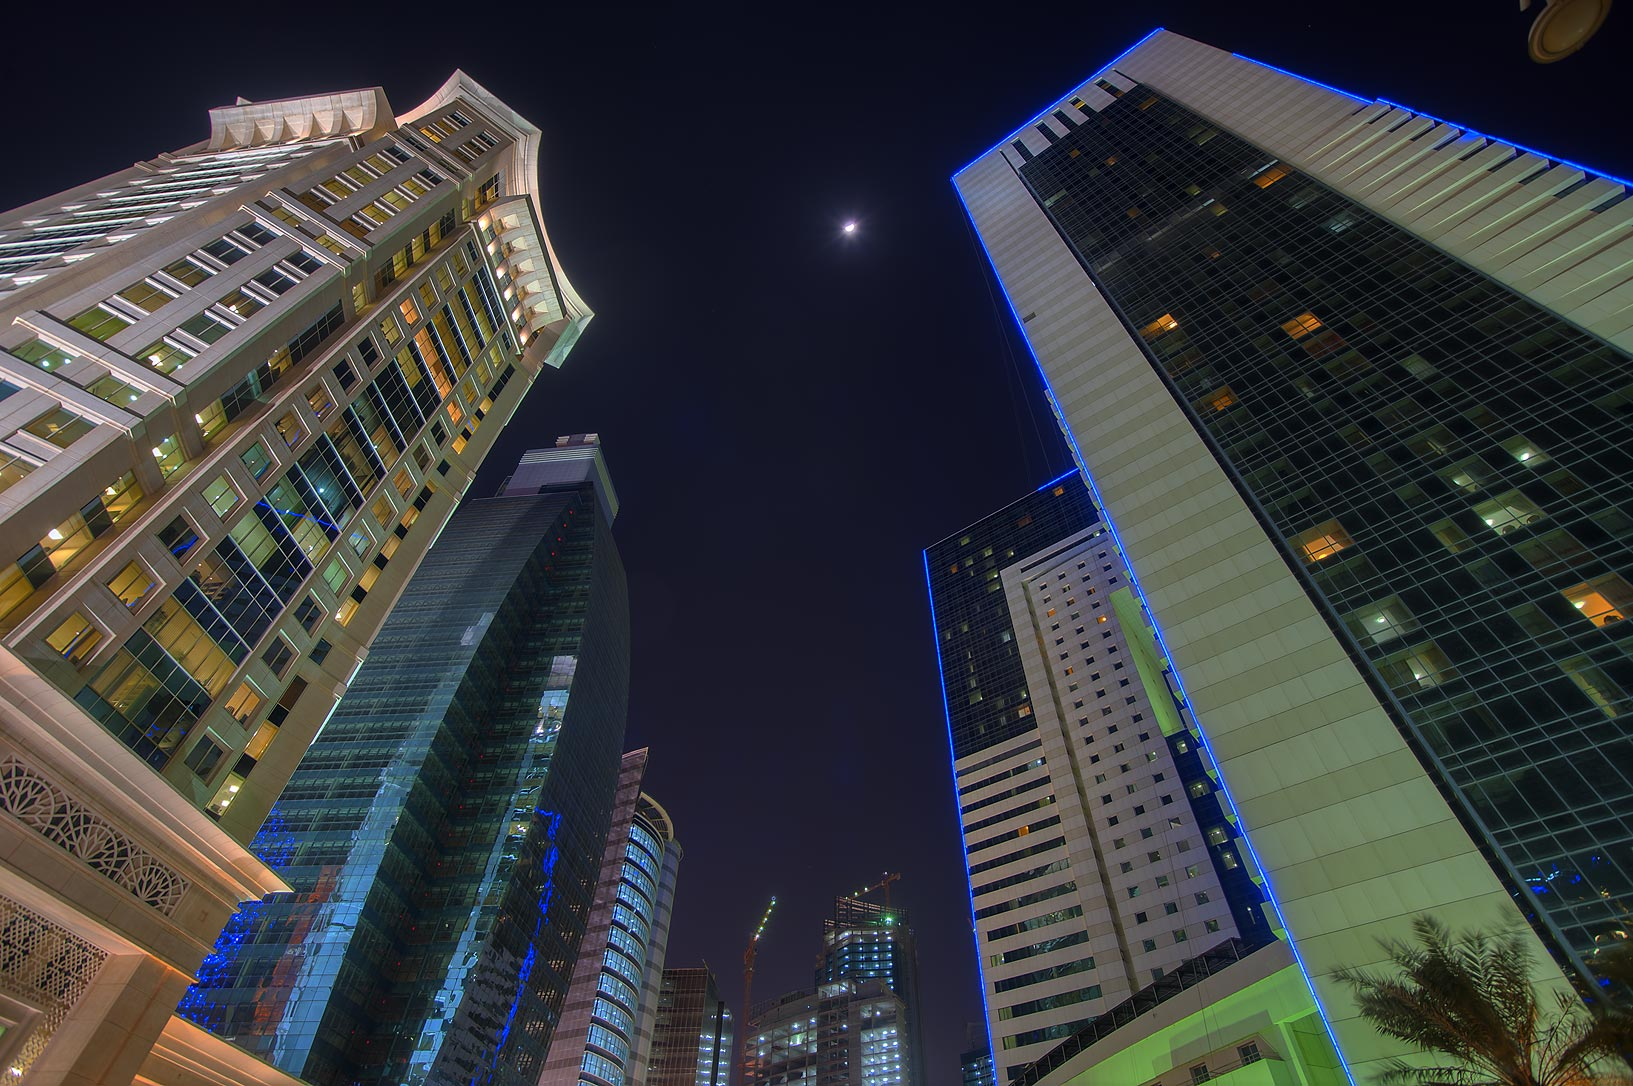 Ezdan Hotel and Al Qassar Tower at Al Betra St. in West Bay. Doha, Qatar